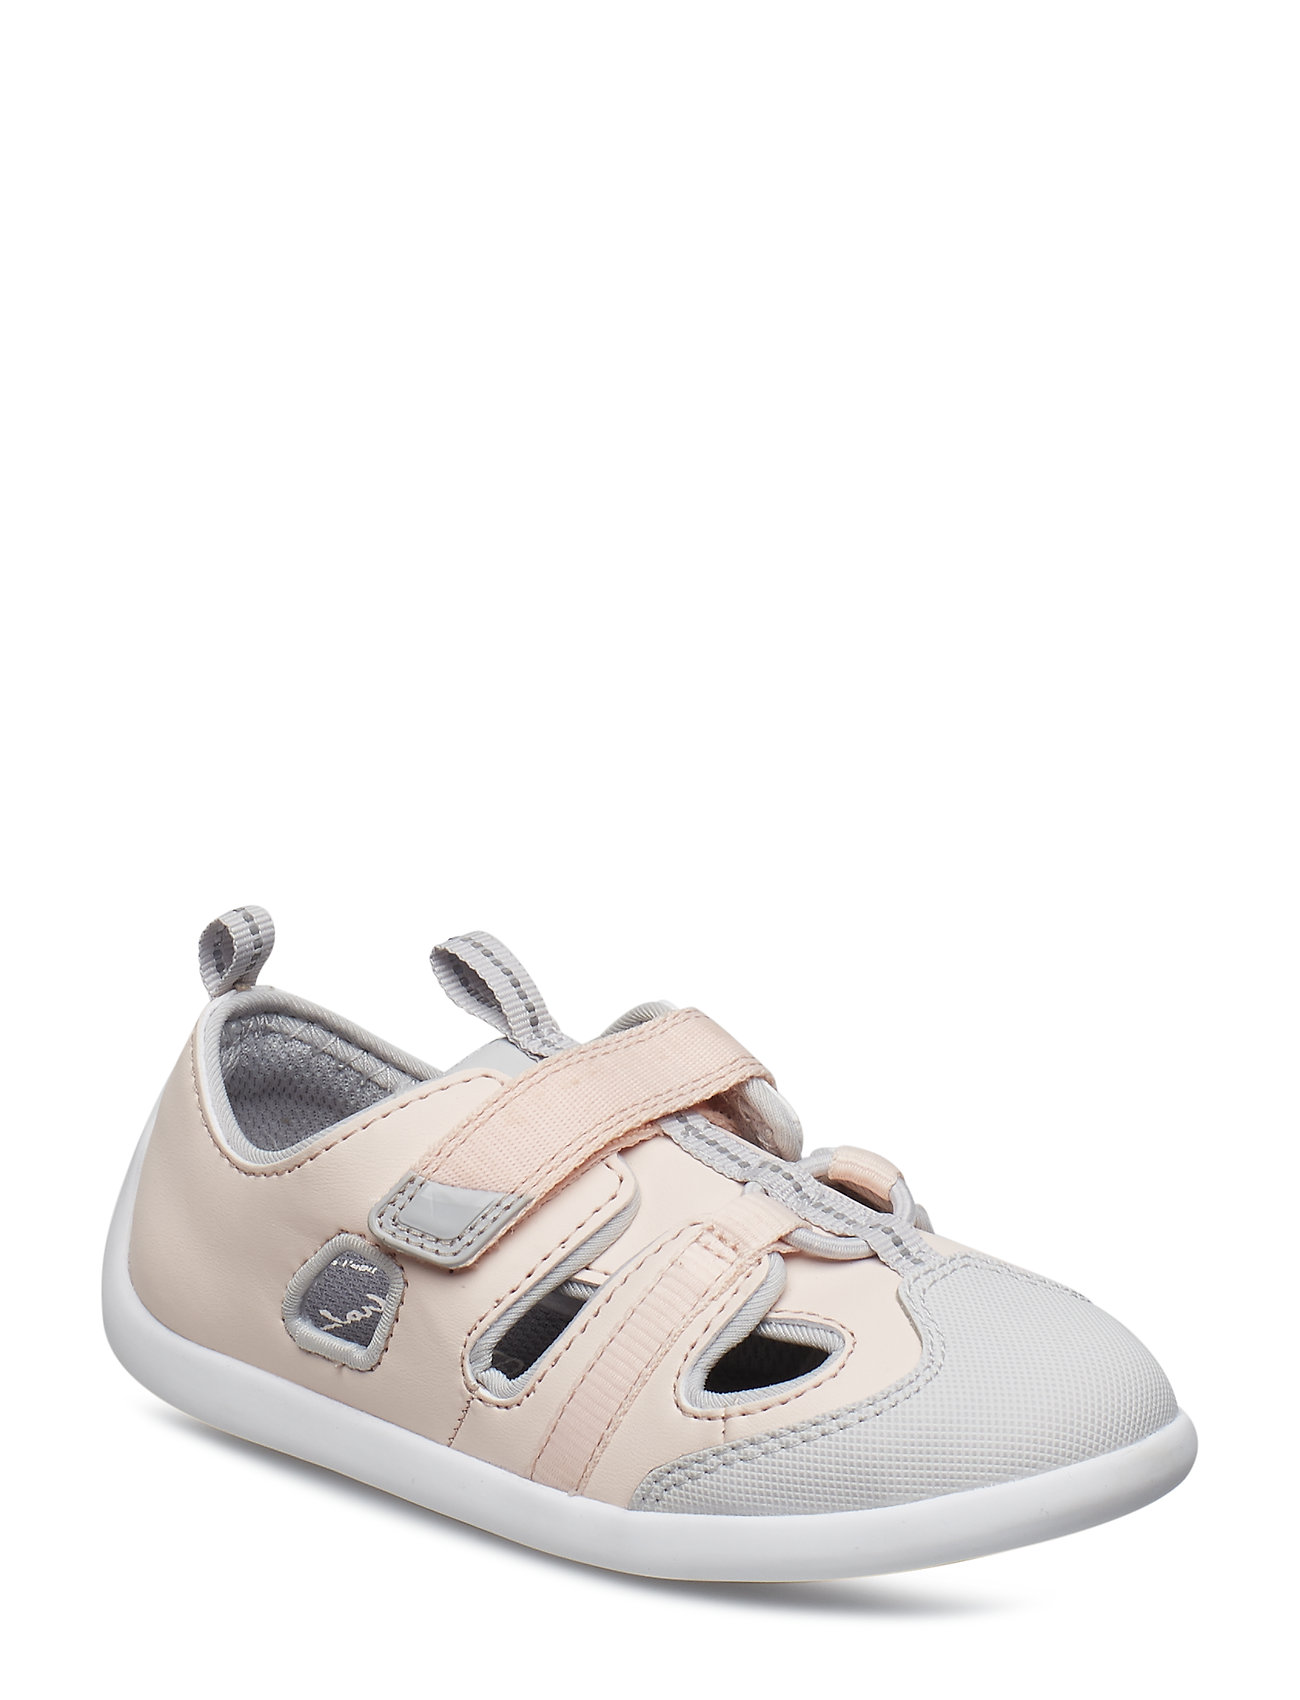 Clarks Play Bright T - PINK SYNTHETIC